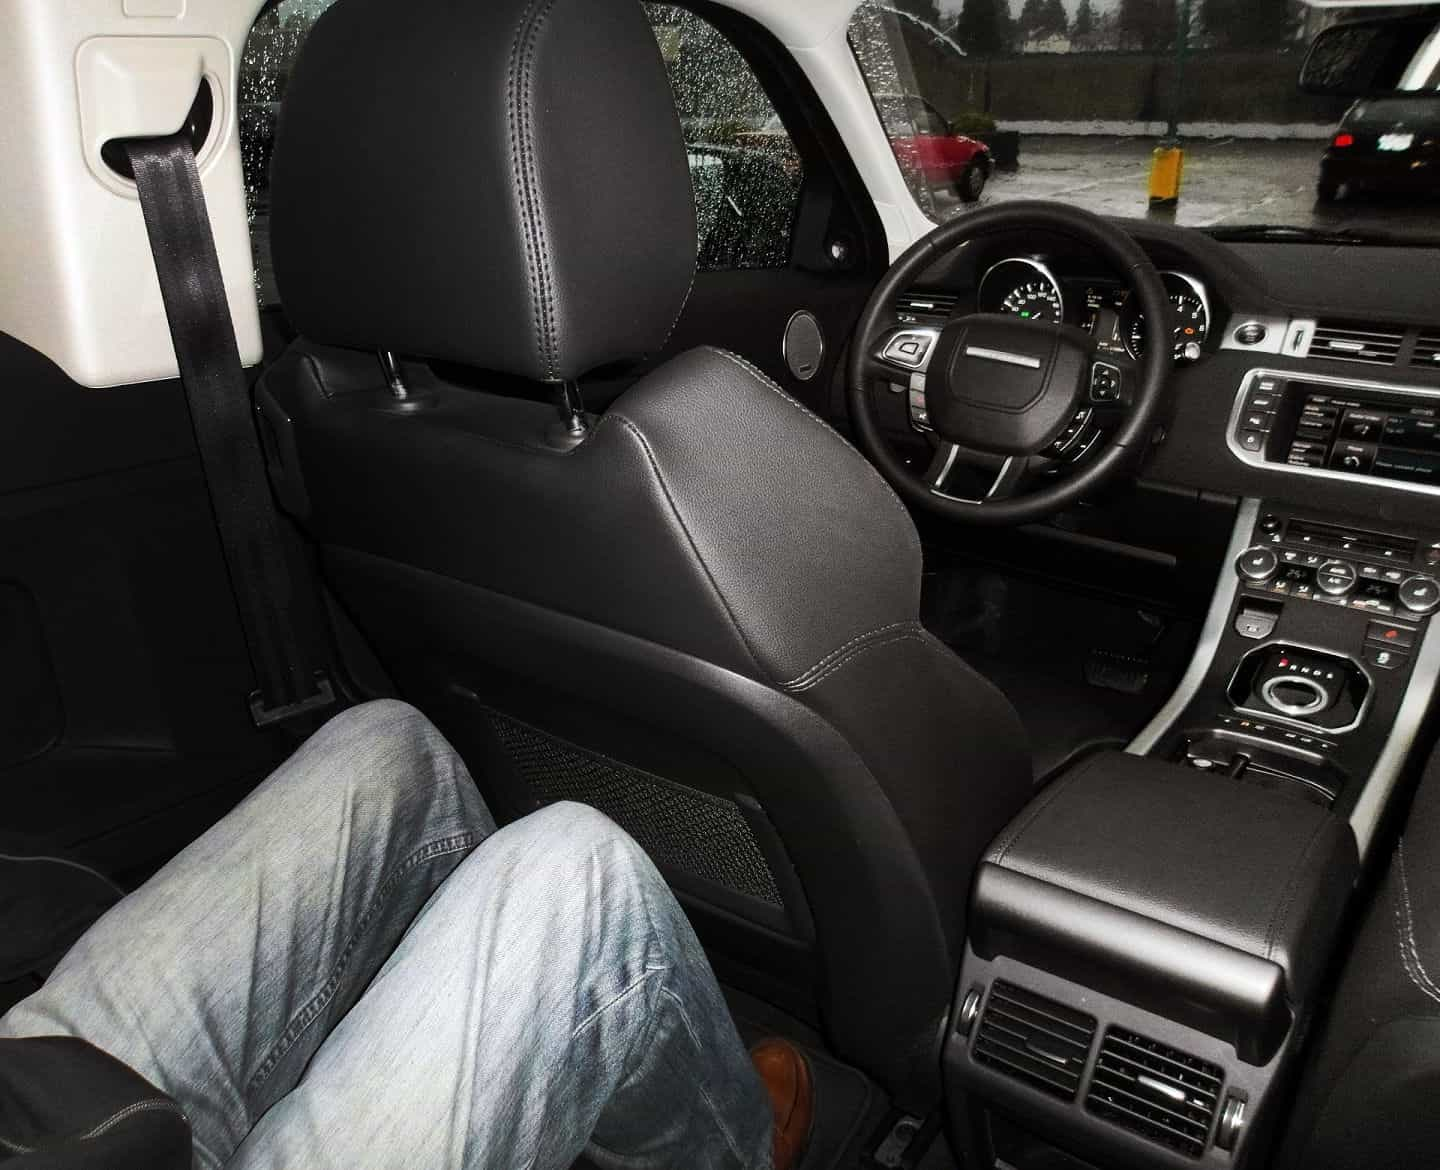 2013 Range Rover Evoque Coupe rear leg room